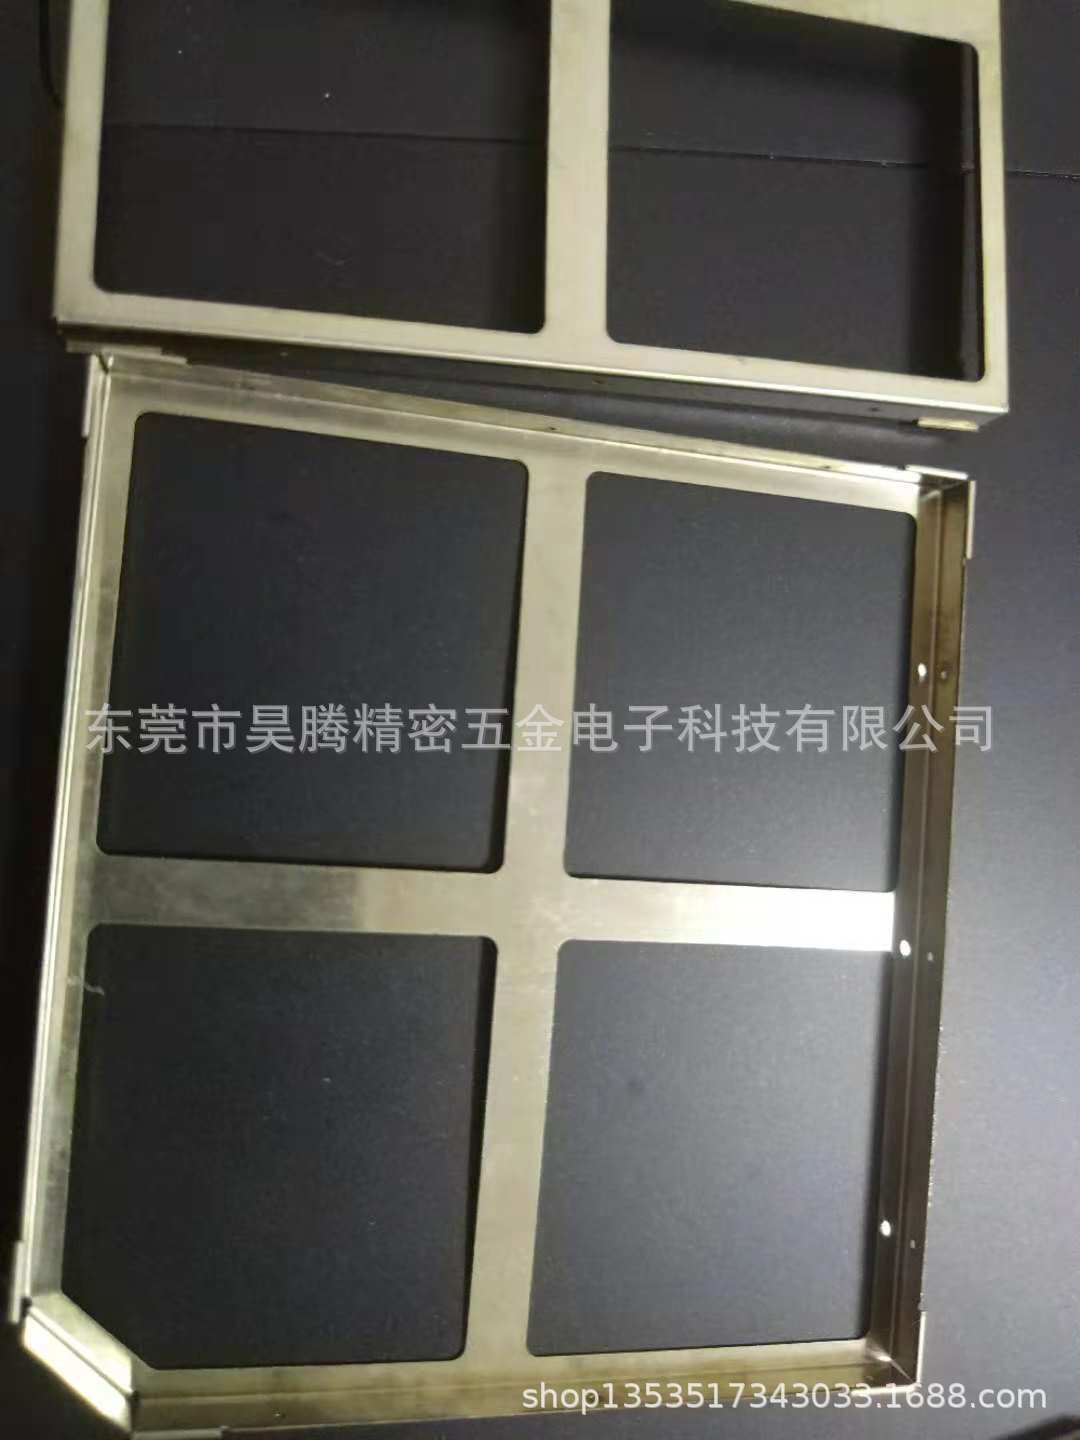 0.2T ocean white copper hand sample processing hand sample processing small batch production shielding cover shielding frame production